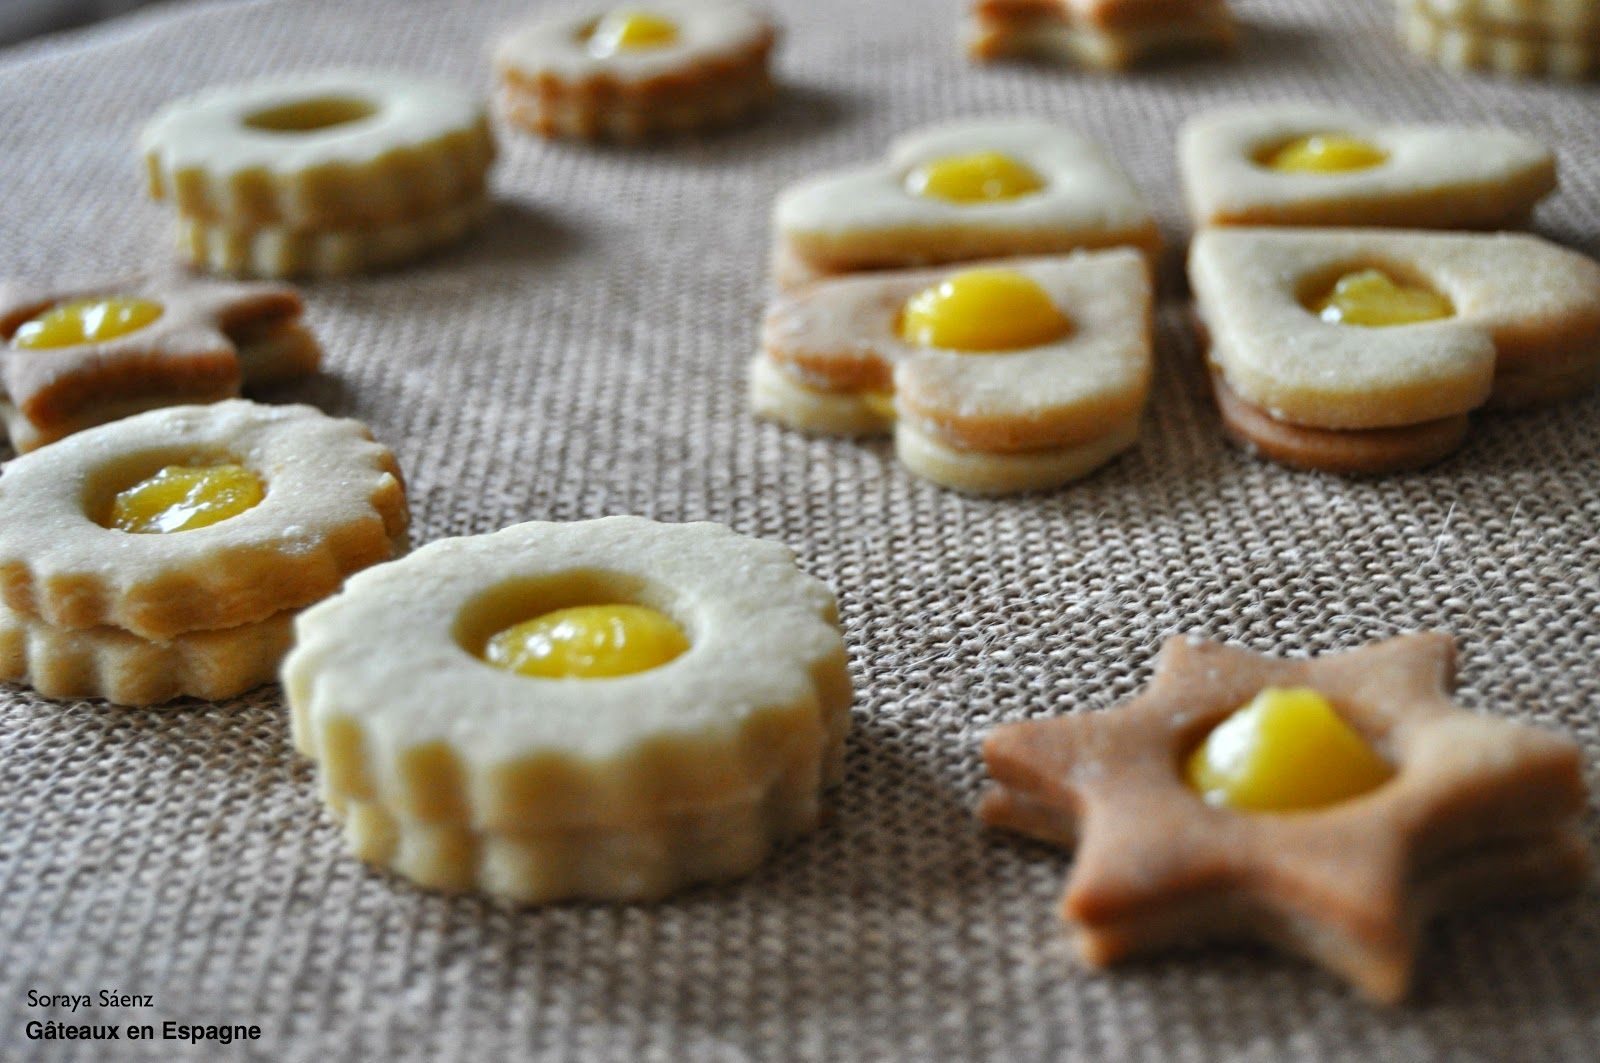 g teaux en espagne recette de biscuits sabl s au citron fourr s au lemon curd. Black Bedroom Furniture Sets. Home Design Ideas